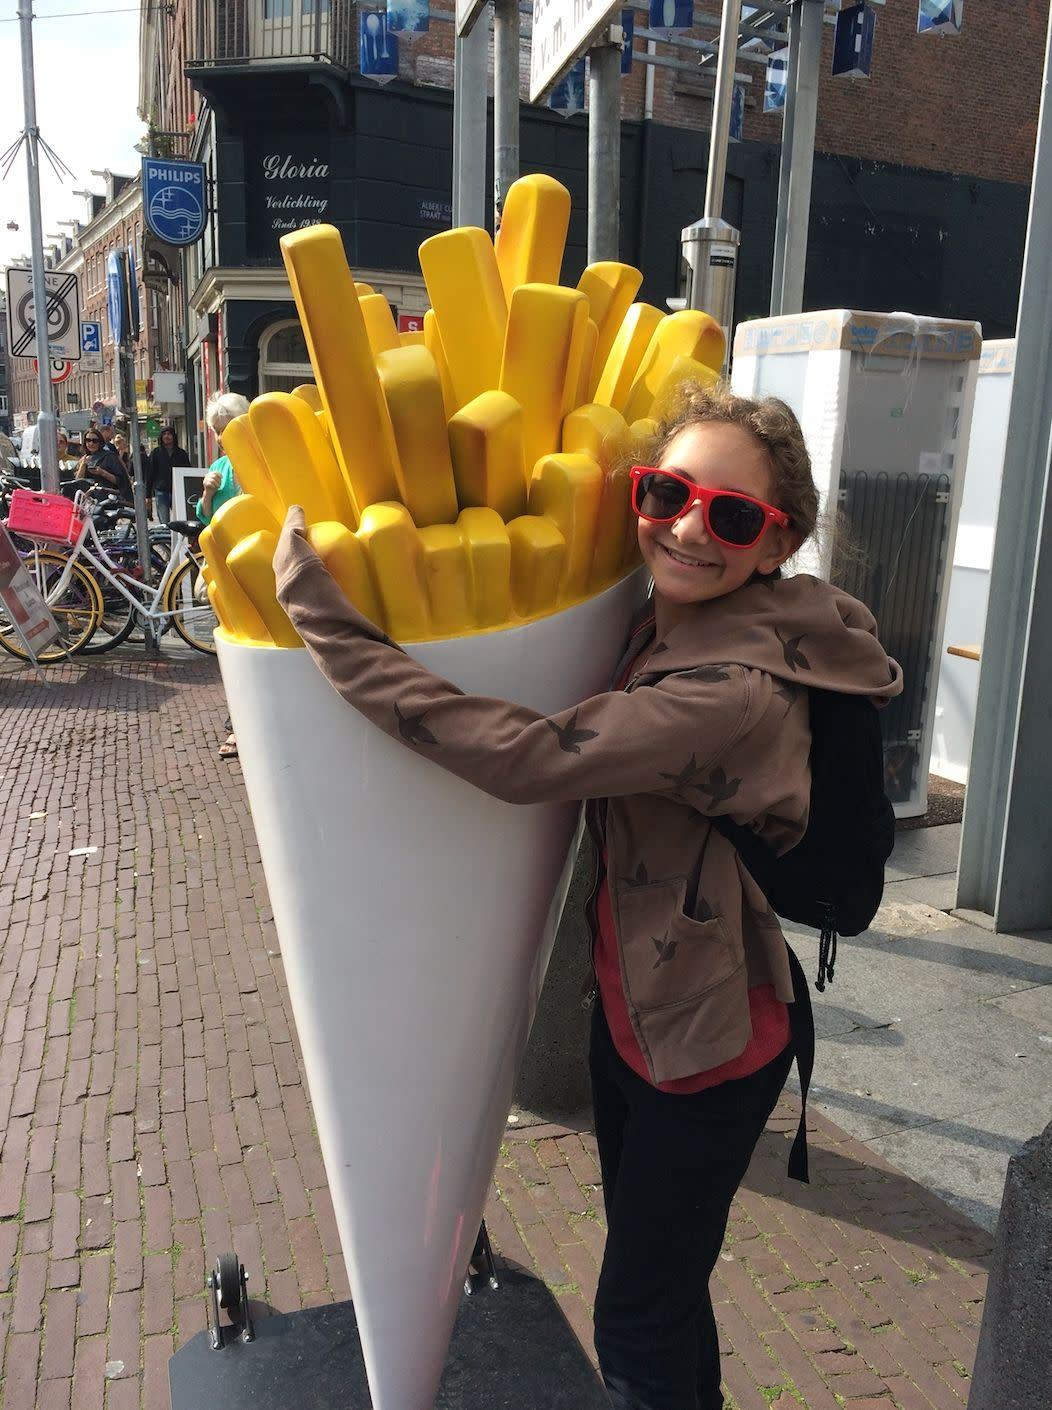 Sammi hugging a statue of french fries during a family trip to Amsterdam. (Photo: Debi Lewis)